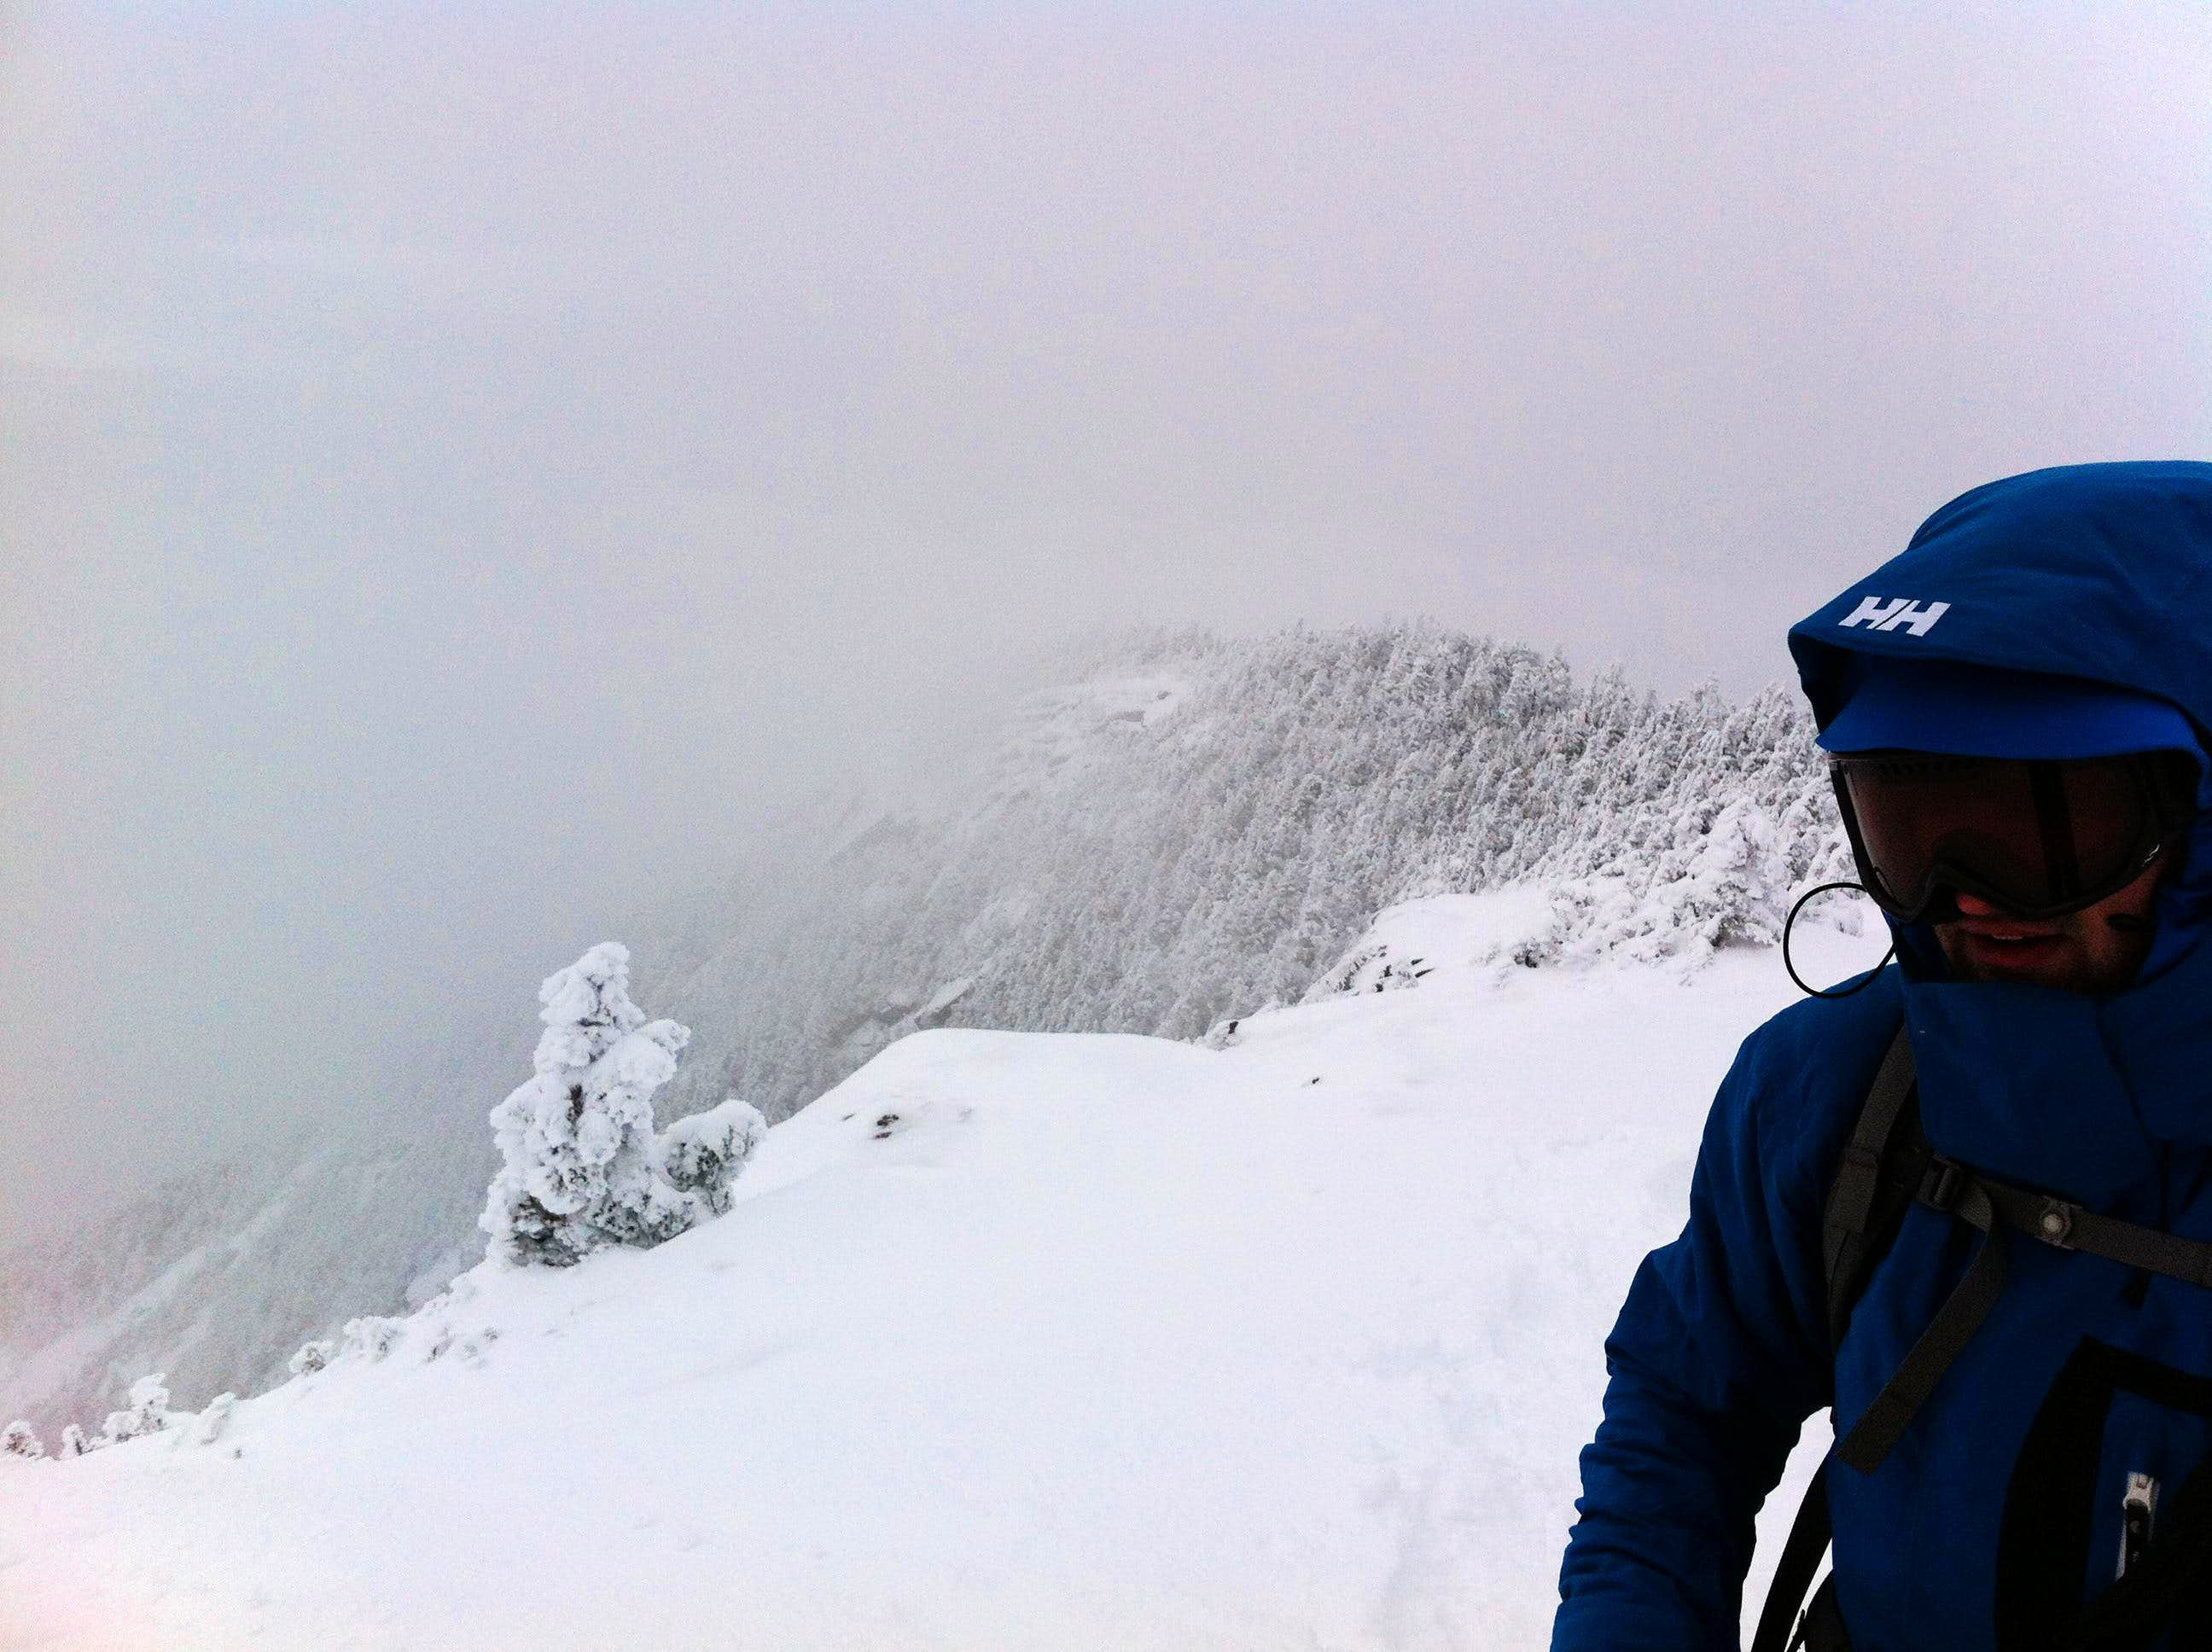 Climbing Giant mountain in winter